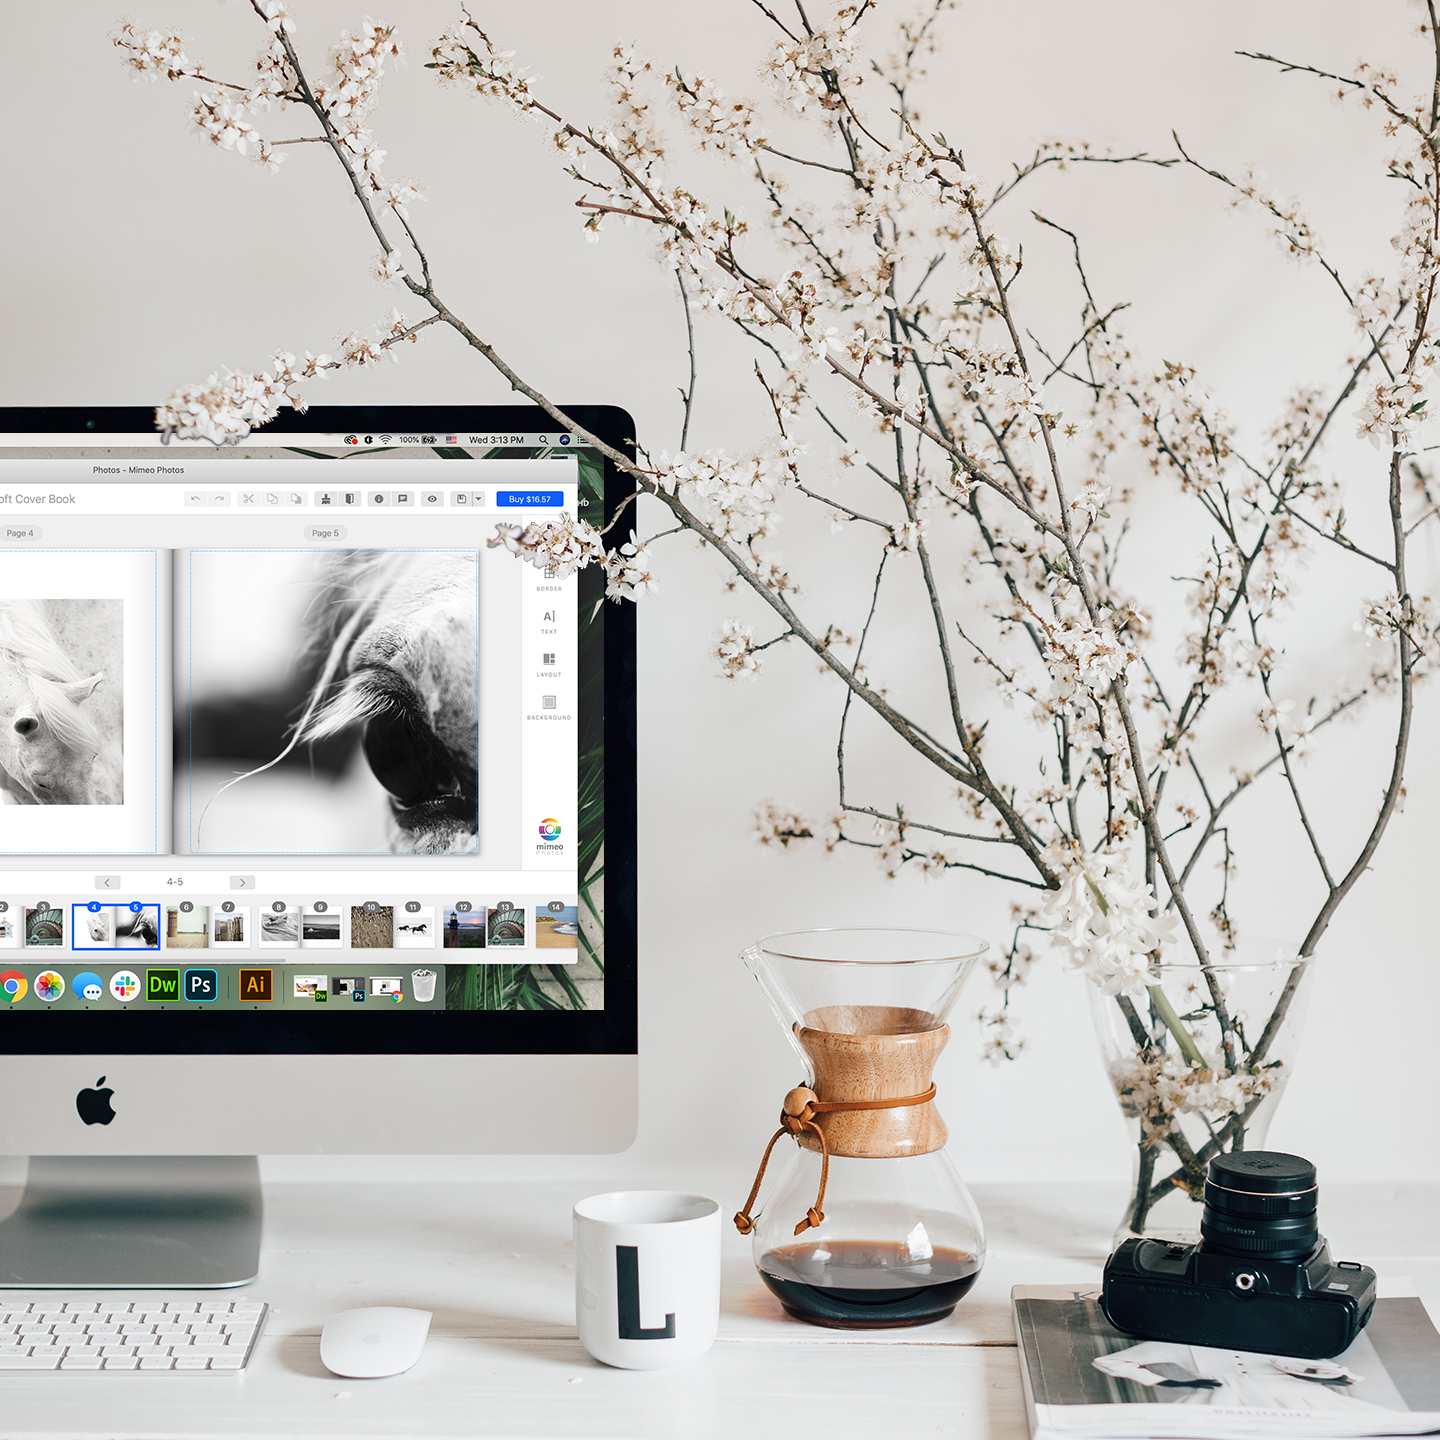 Download Mimeo Photos to Your Mac